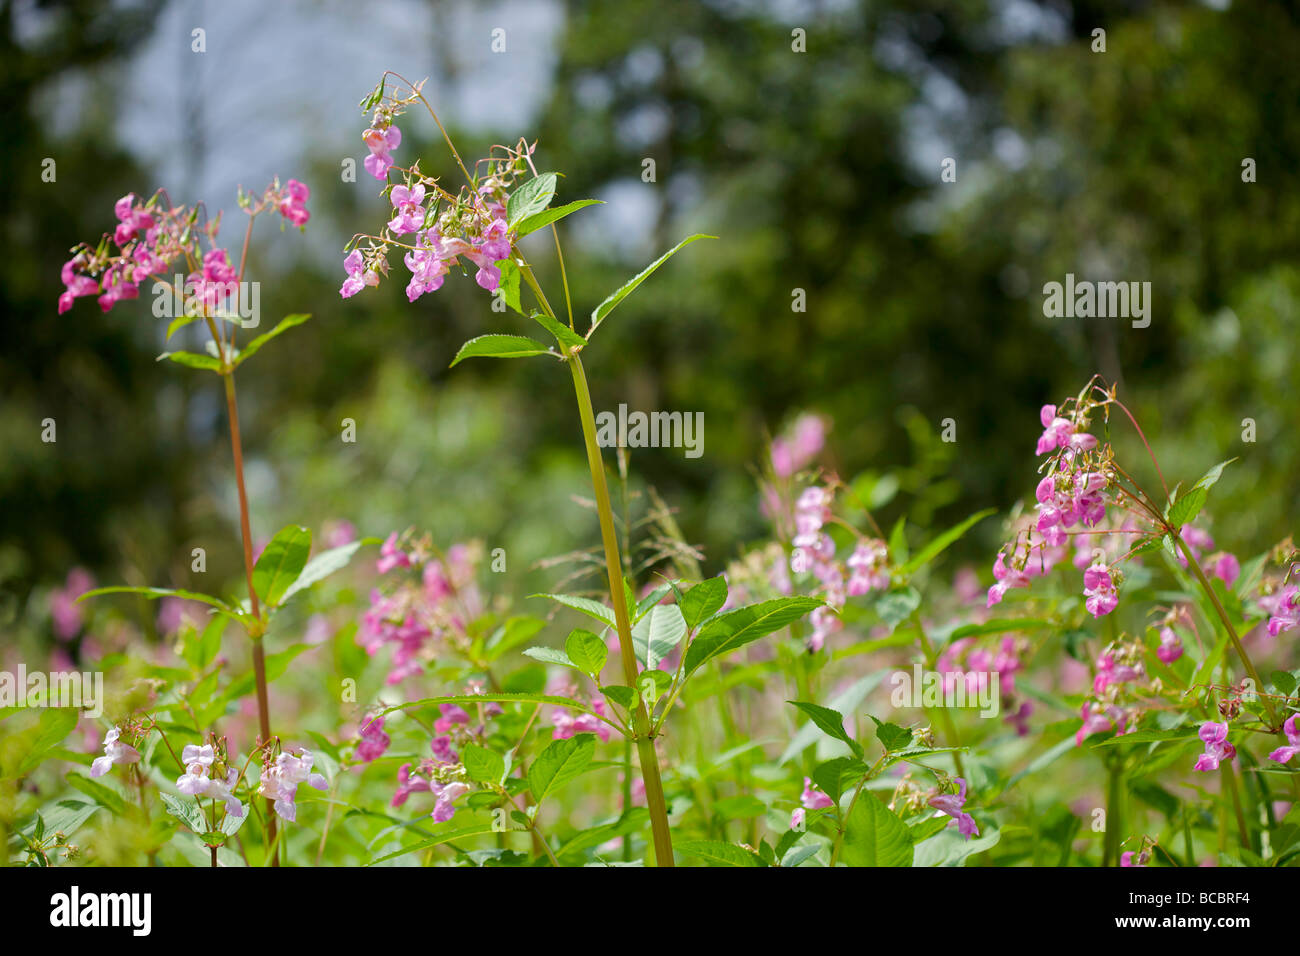 Himalayan Balsam - a very invasive weed - Stock Image